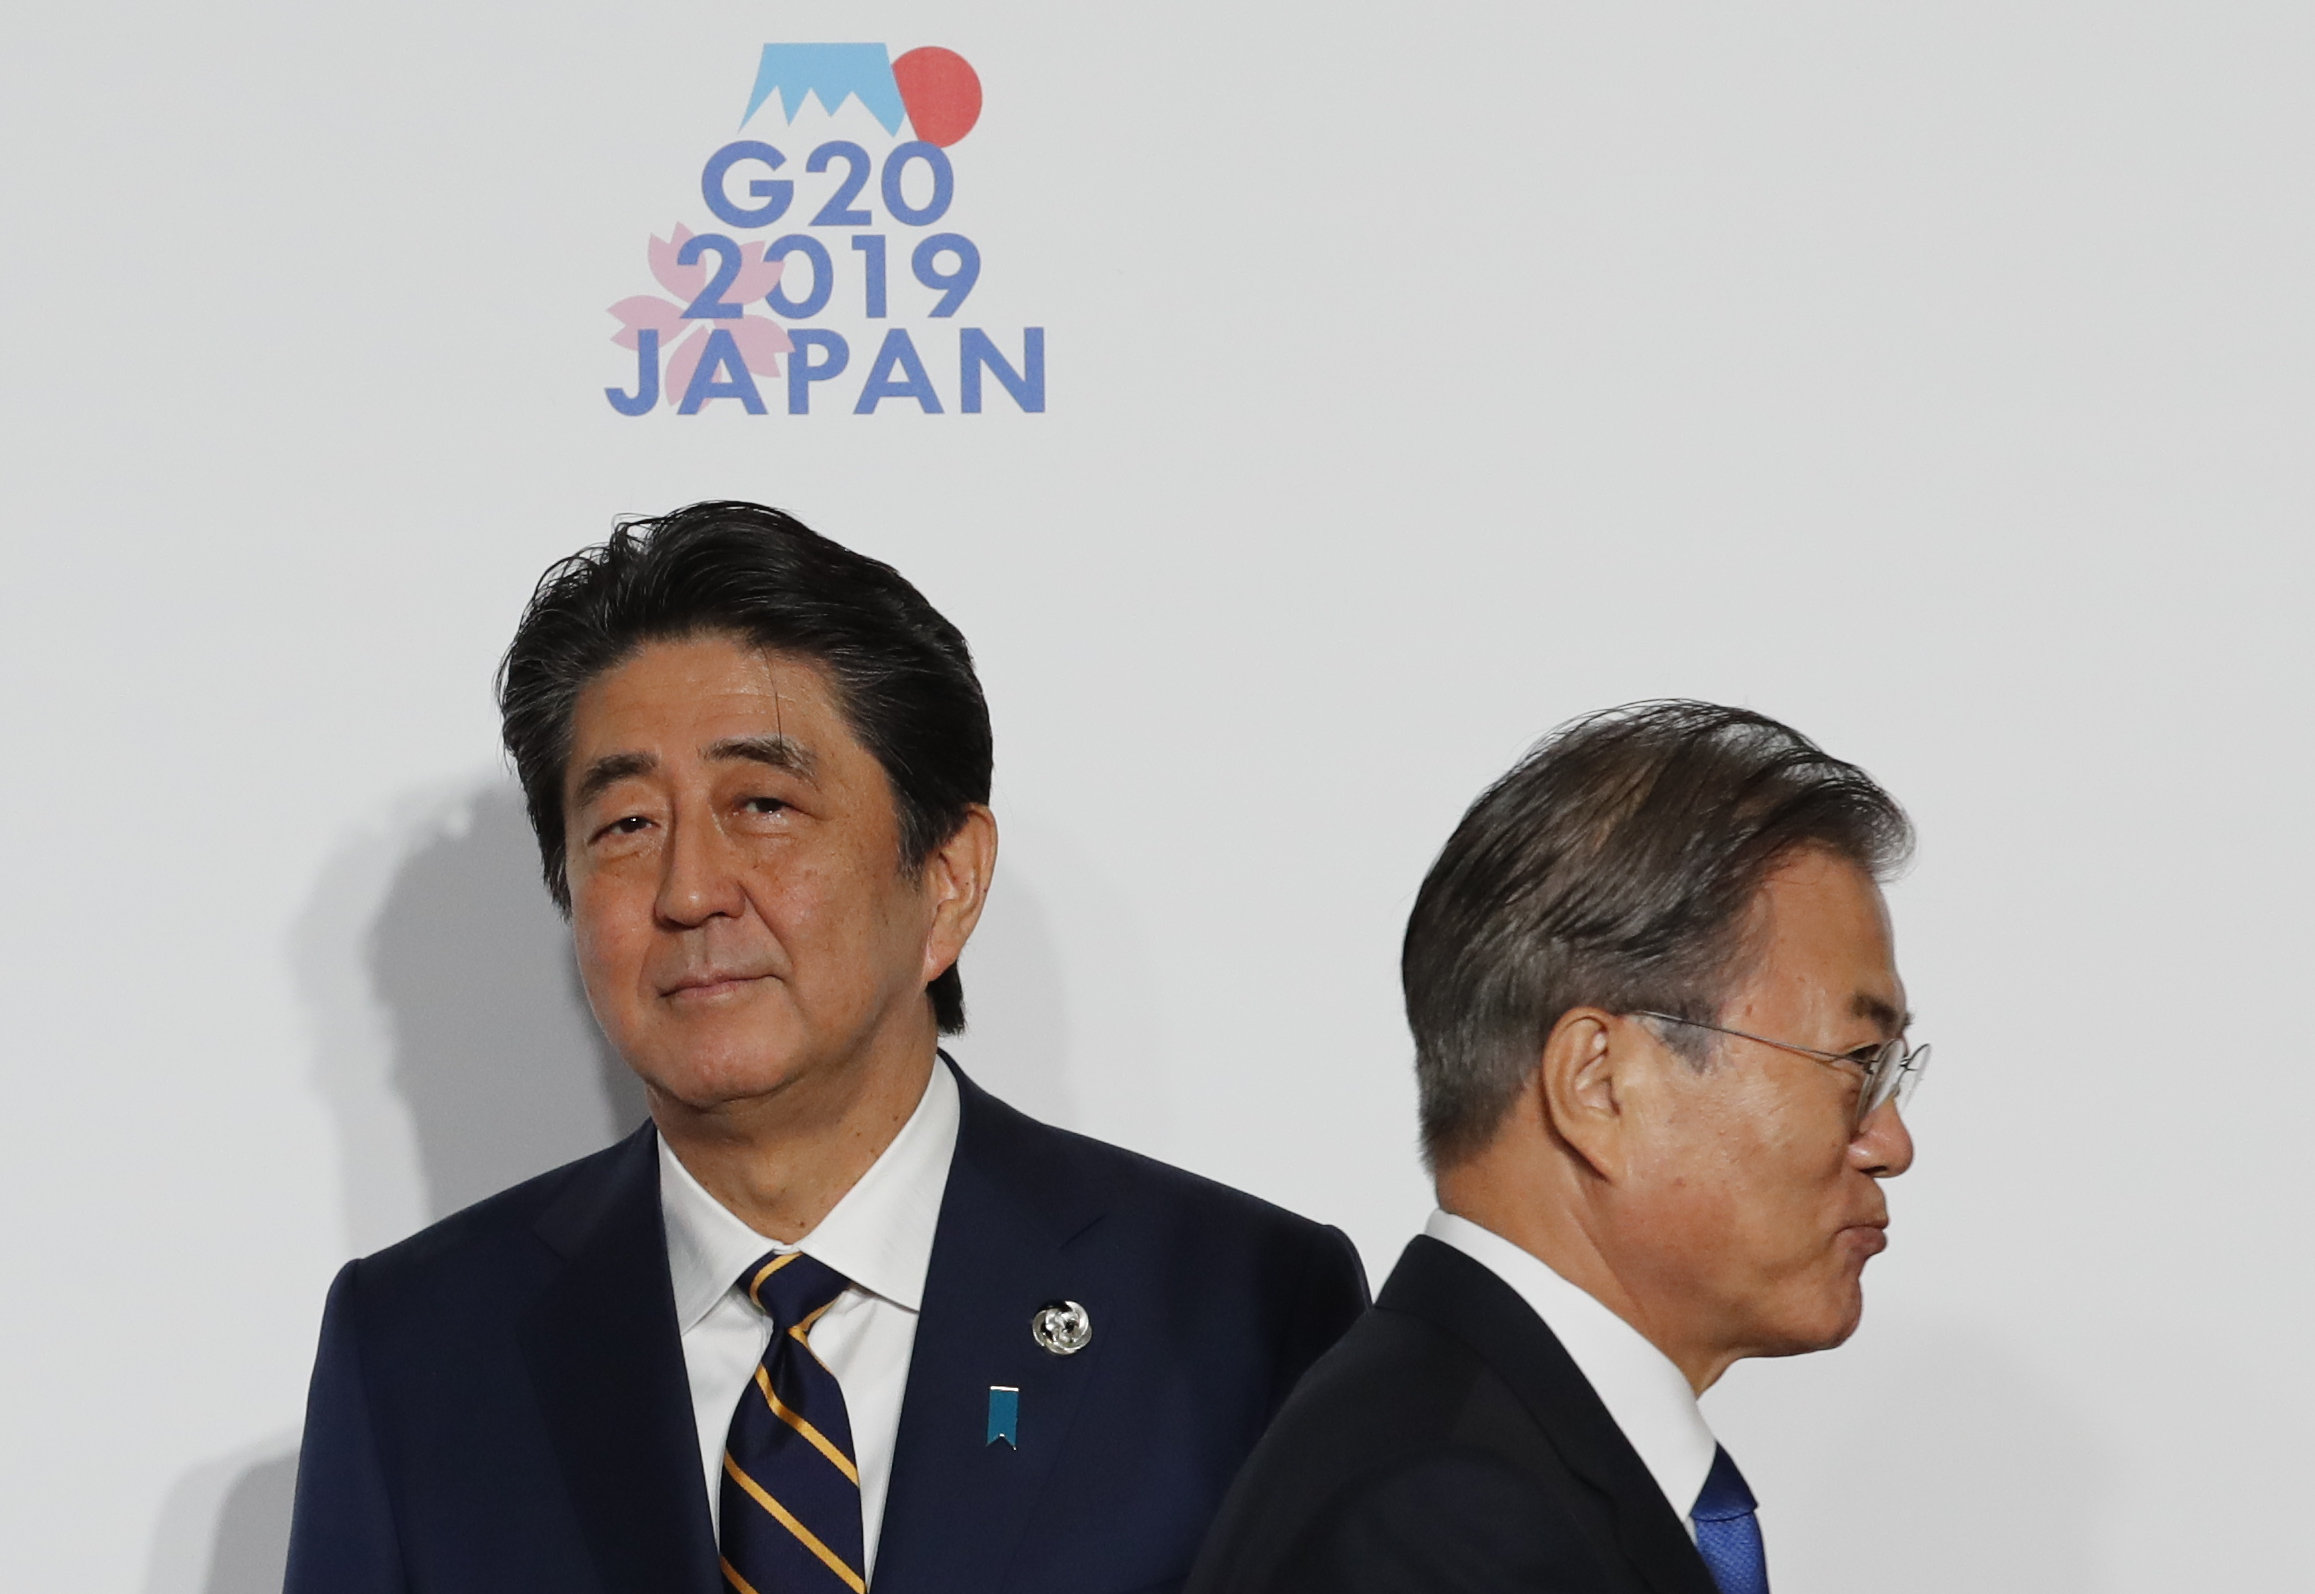 South Korean President Moon Jae-In, right, and Japanese Prime Minister Shinzo Abe prepare to take part in a photo session at the G20 summit on June 28, 2019, in Osaka, Japan. (Kim Kyung-Hoon/Getty Images)